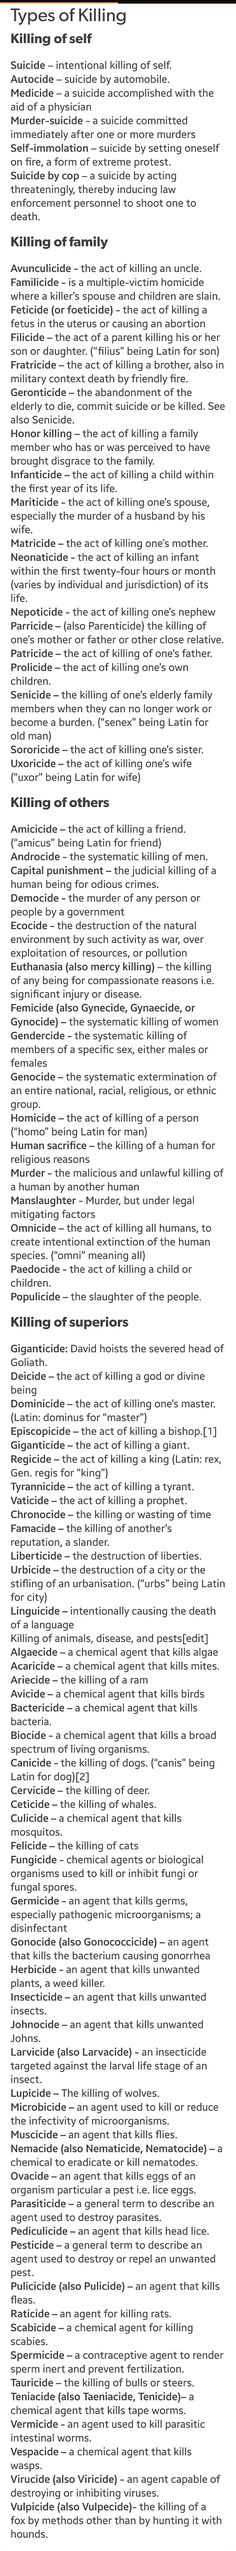 The names for different types of murders.